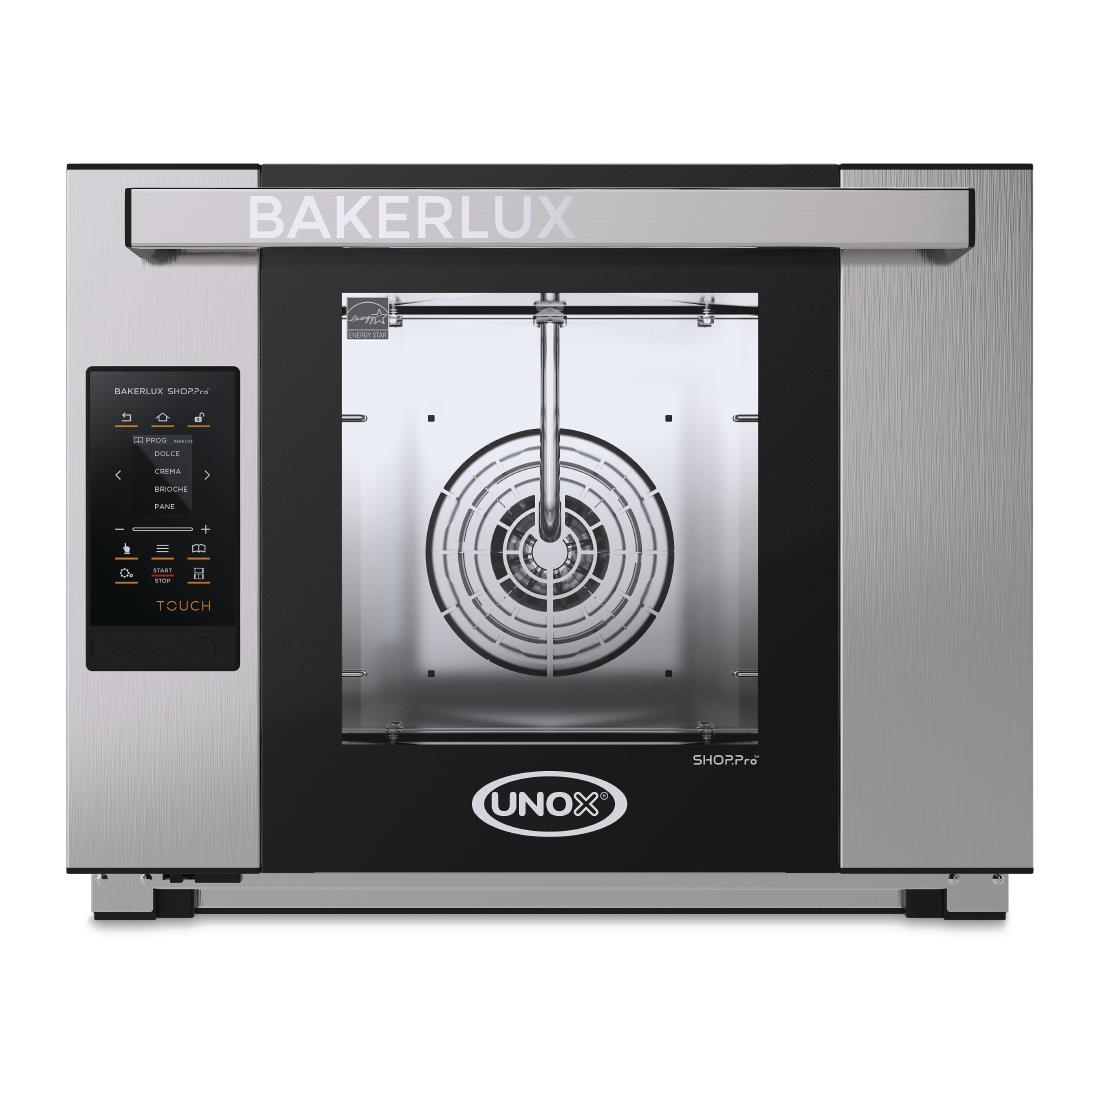 Unox Bakerlux SHOP Pro Arianna Touch 4 Grid Convection Oven